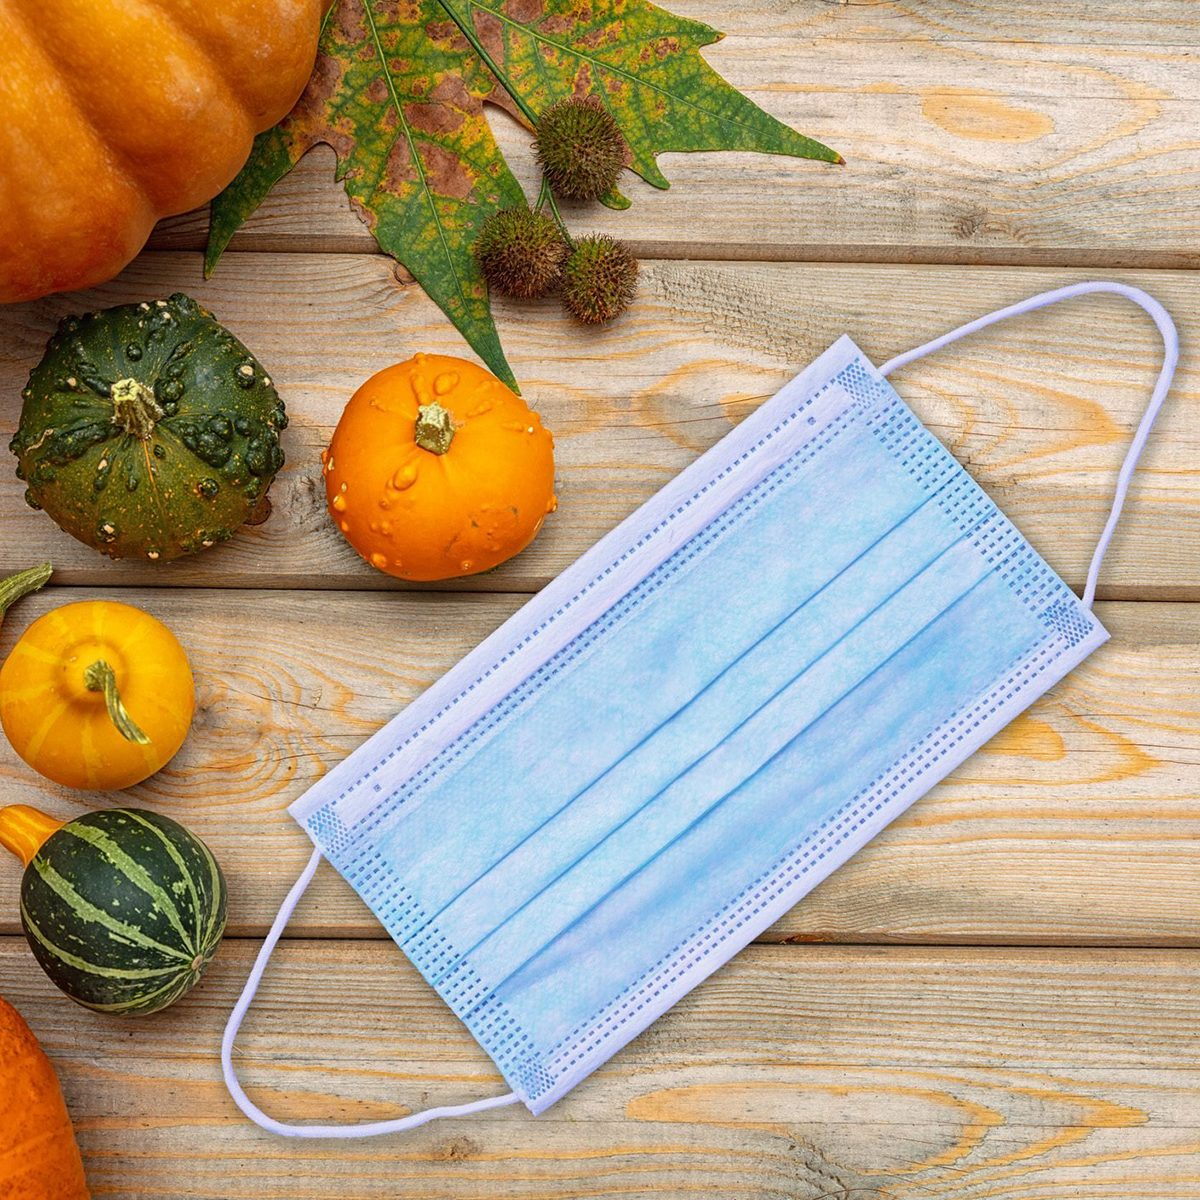 Thanksgiving 2020, coronavirus days, Protective face mask and colorful pumpkins on wooden background. COVID 19 spread prevention measure